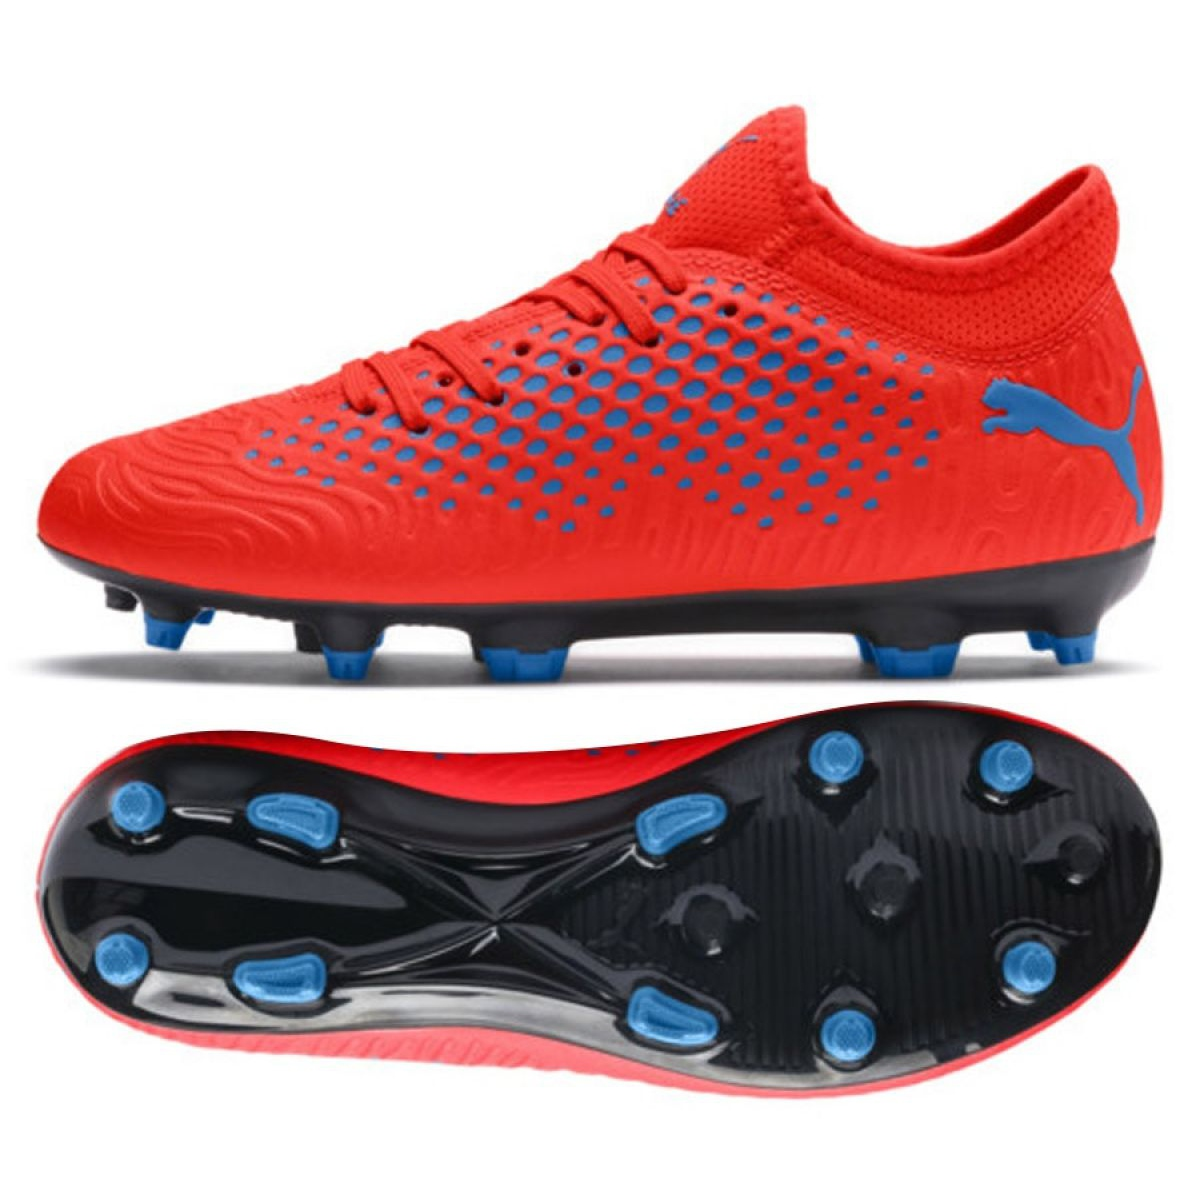 Details about Football boots Puma Future 19.4 Fg Ag Jr 105554 01 red red